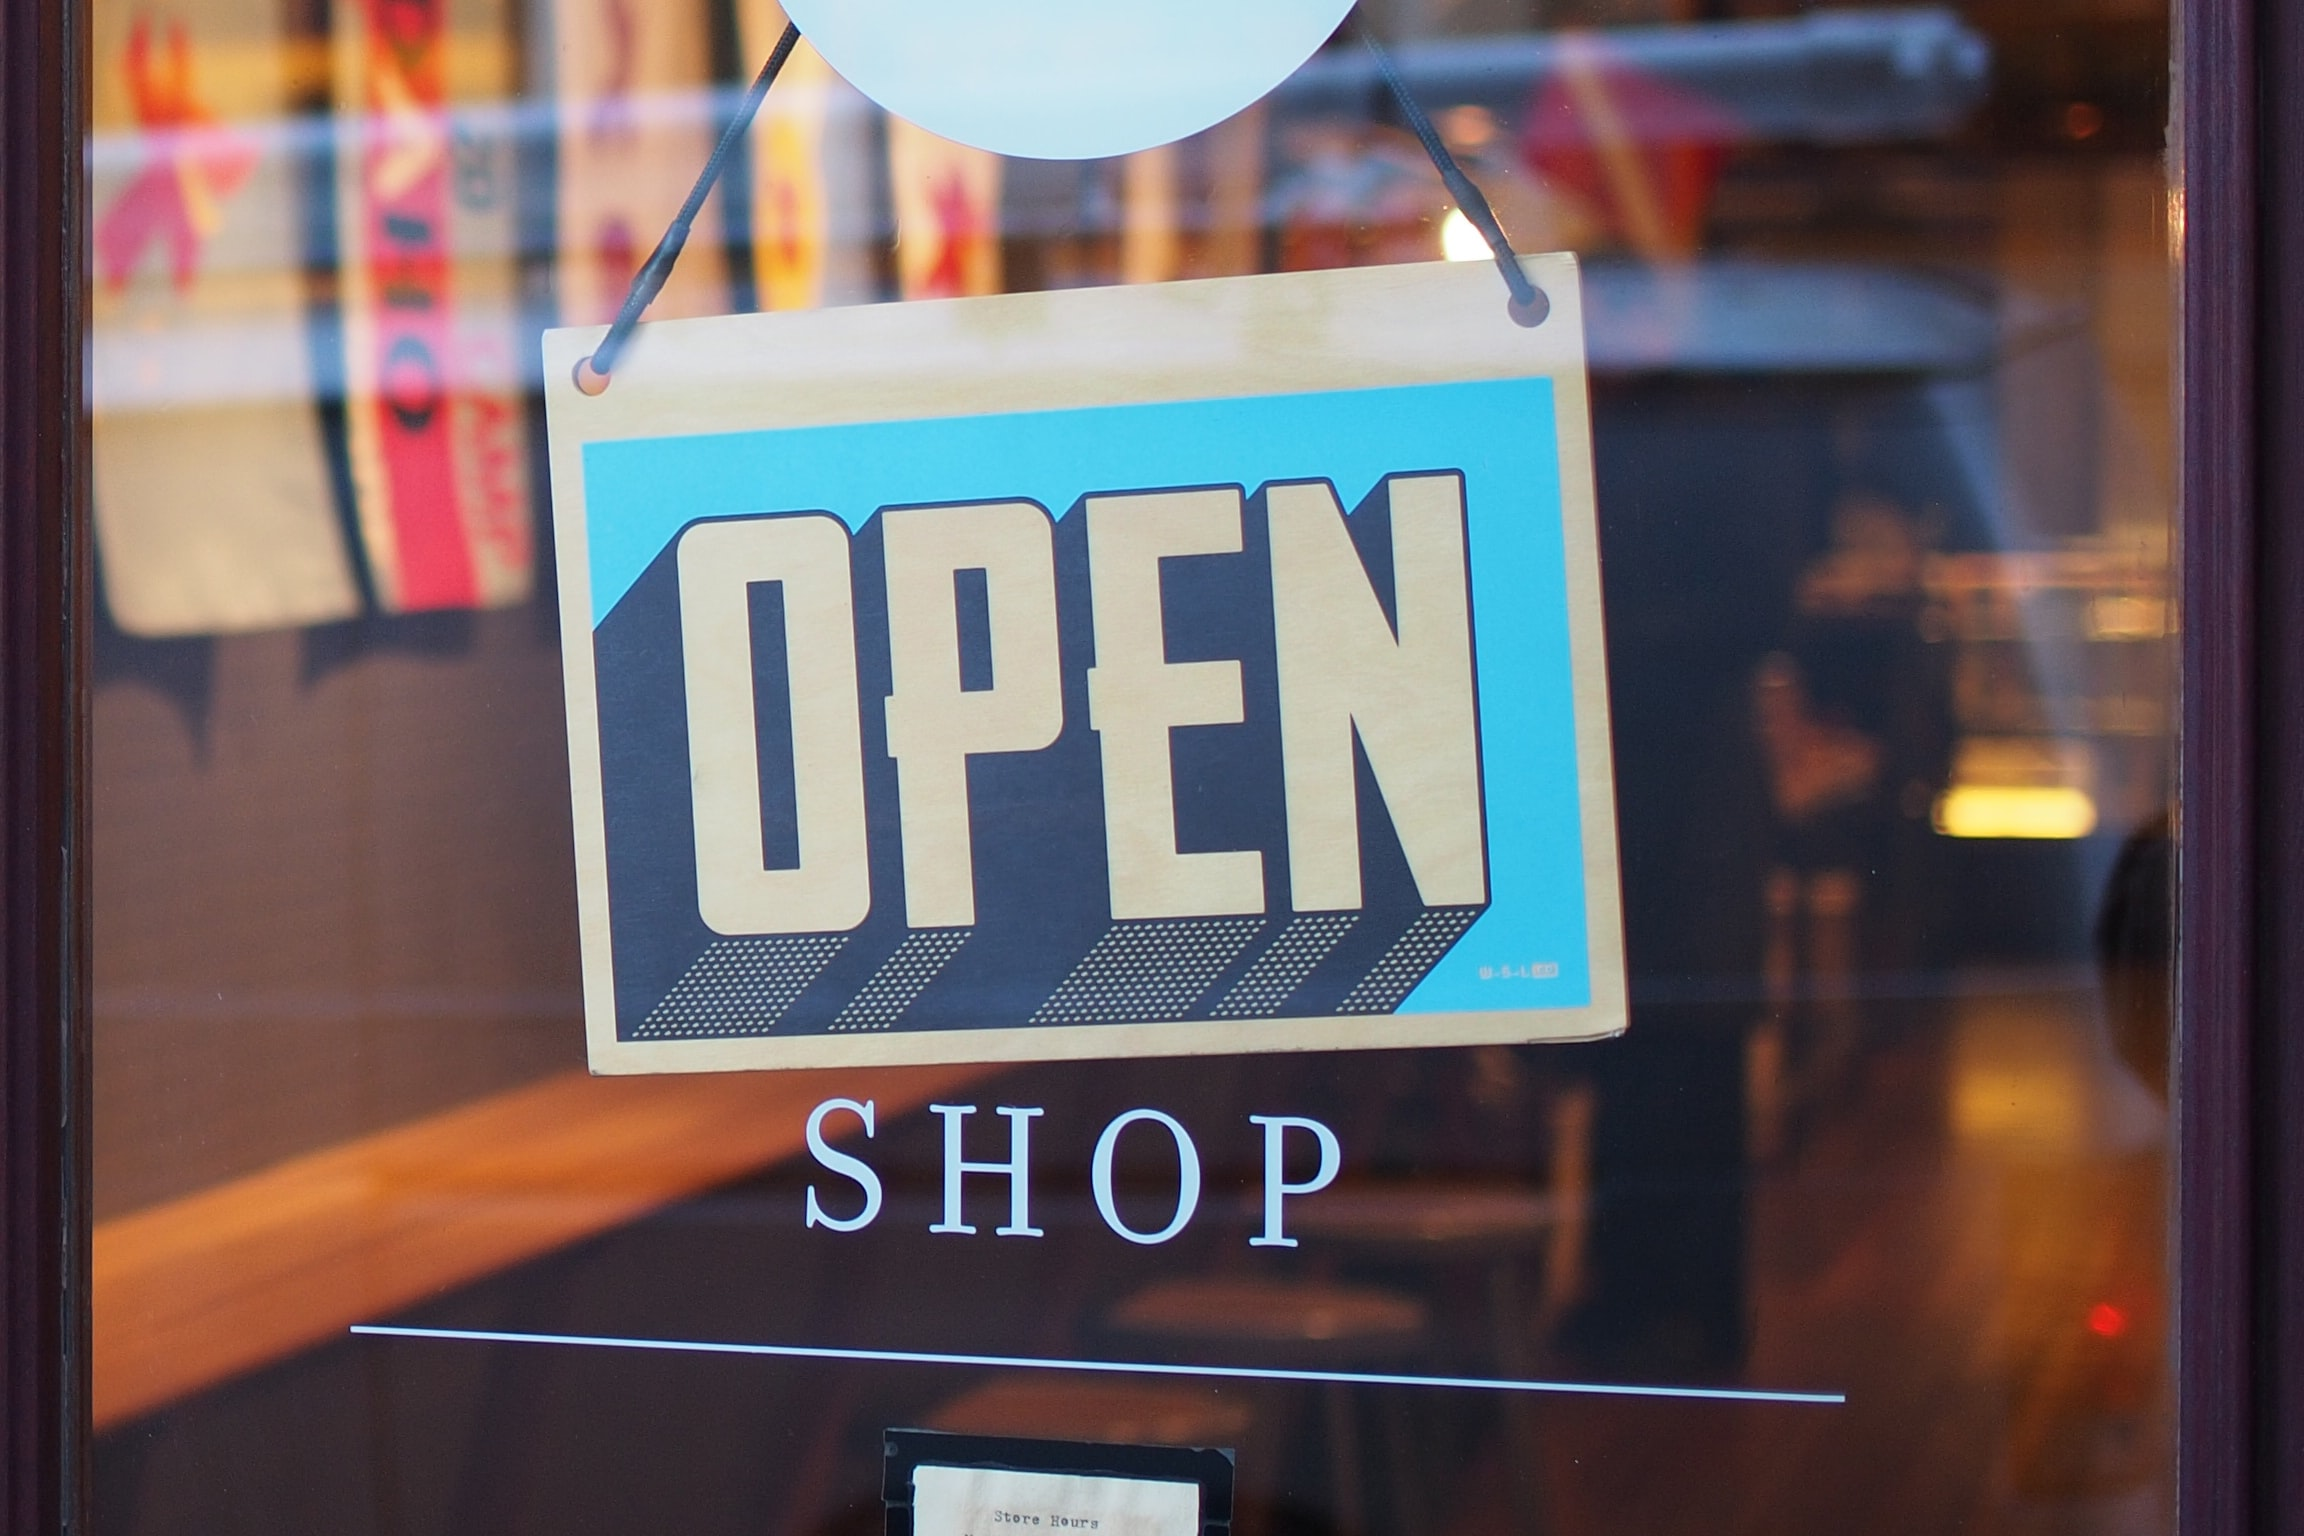 Shop open sign. Photo by Mike Petrucci on Unsplash